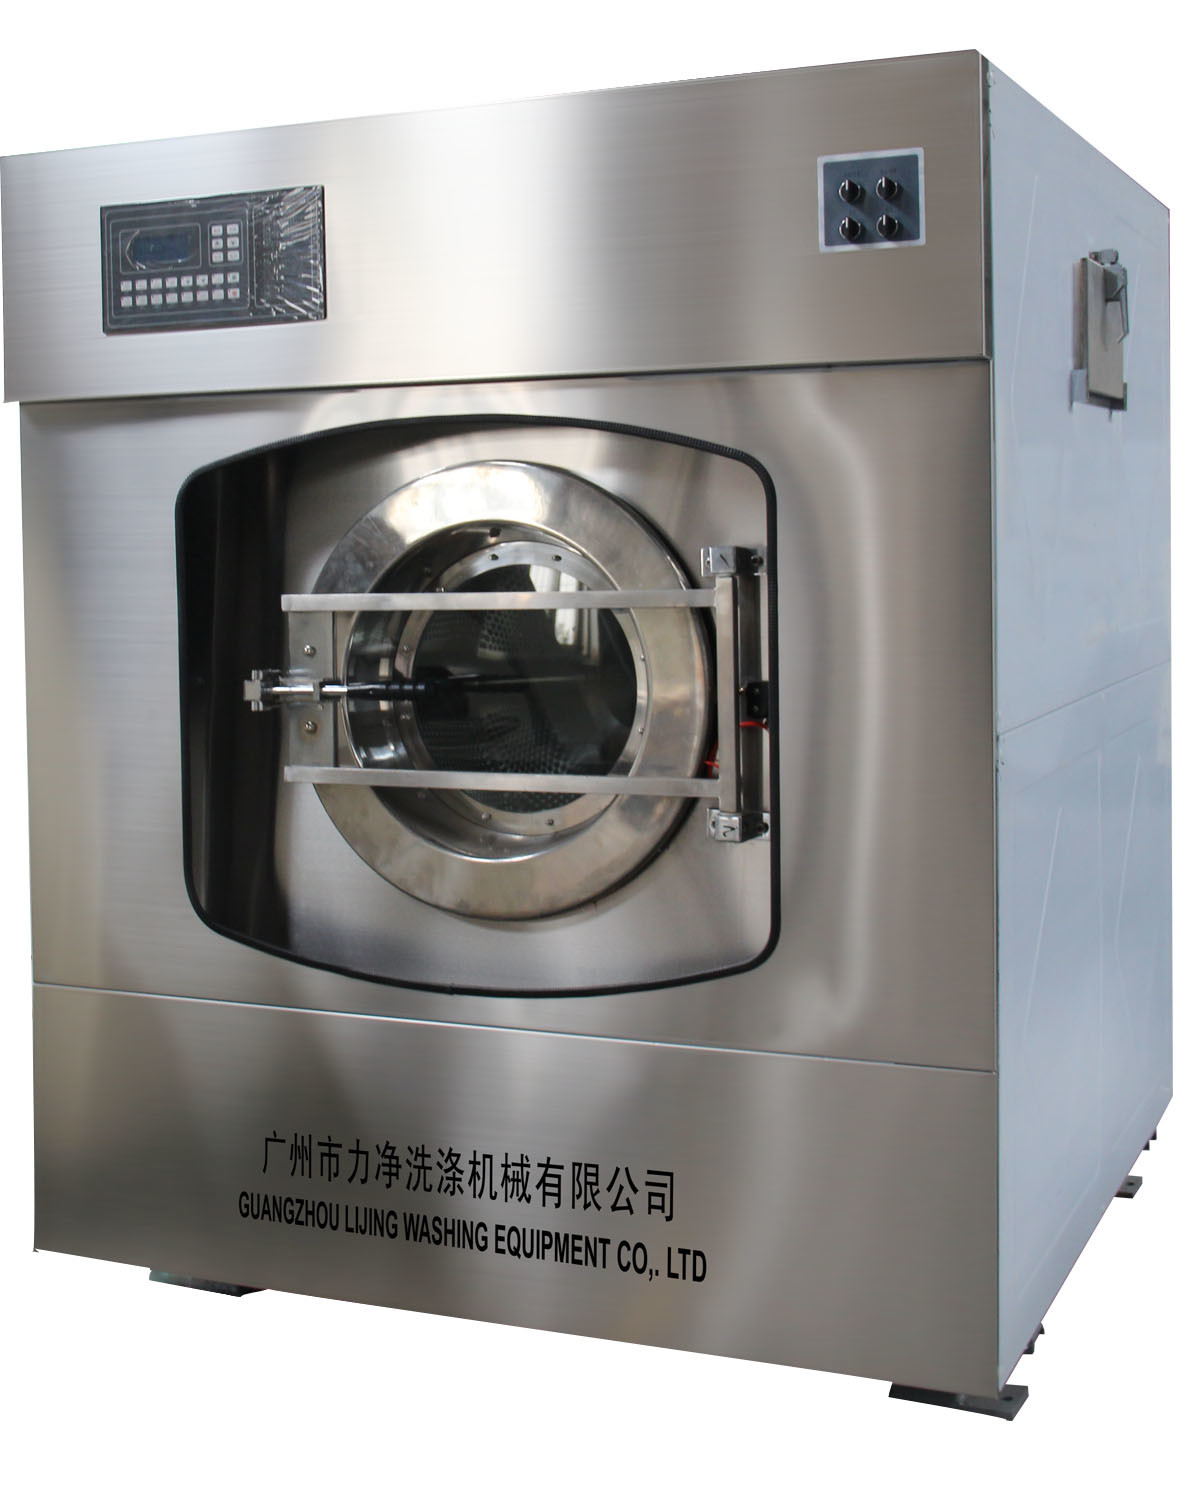 Industrial Washing Machines : China ce approved industrial laundry washing machine